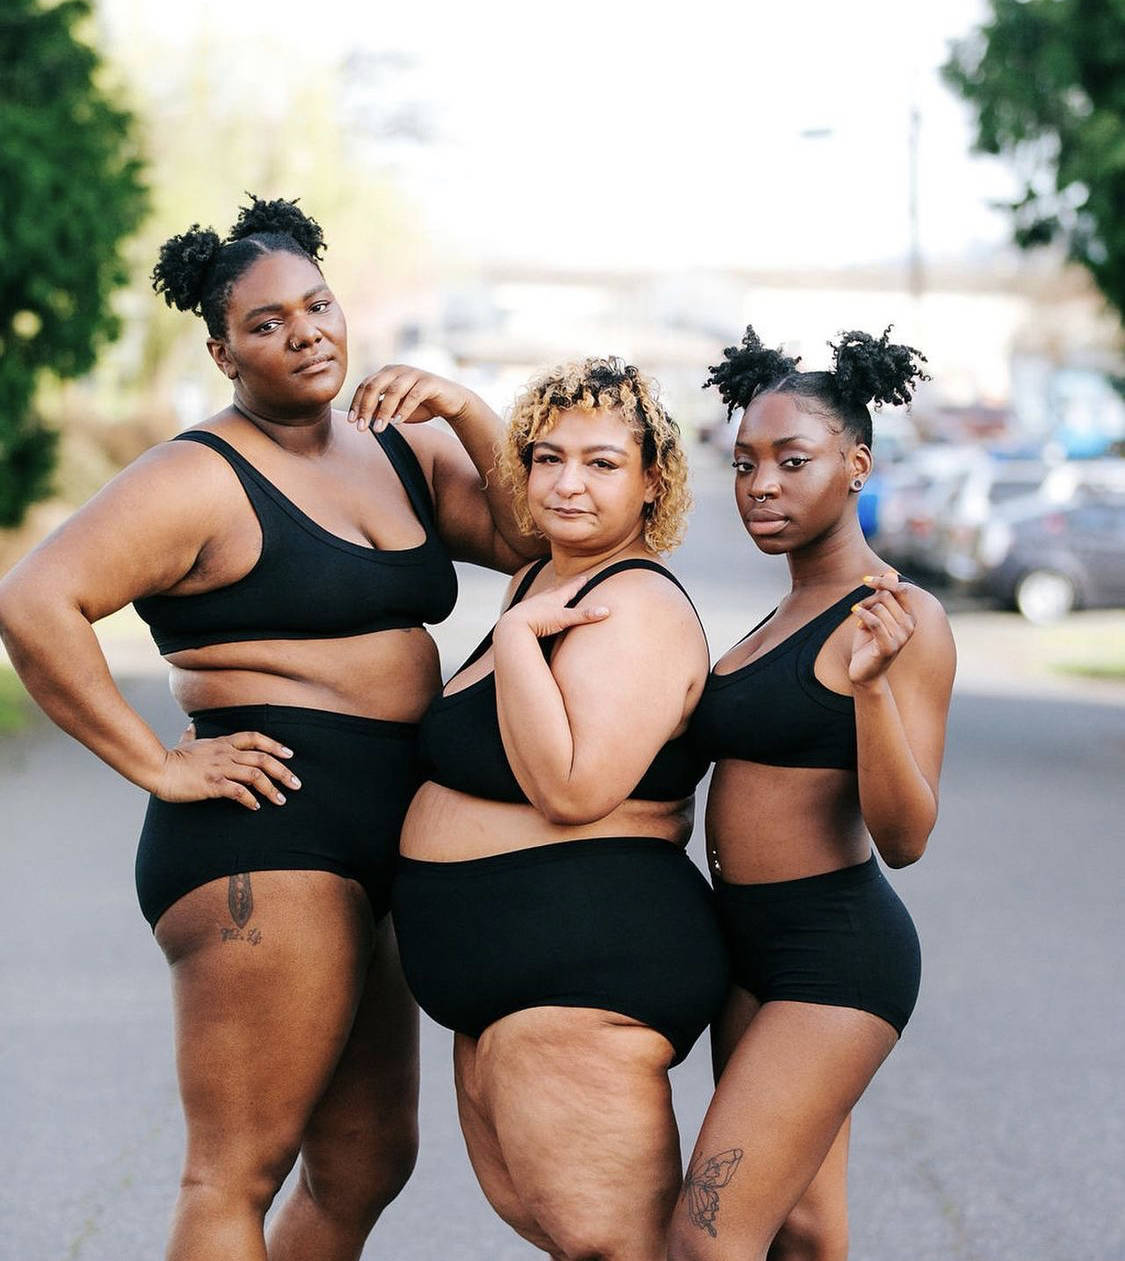 The high-waist granny panties is making women of all body types and sizes embrace themsleves with more confidence and elan  Pic- @thunderpants.